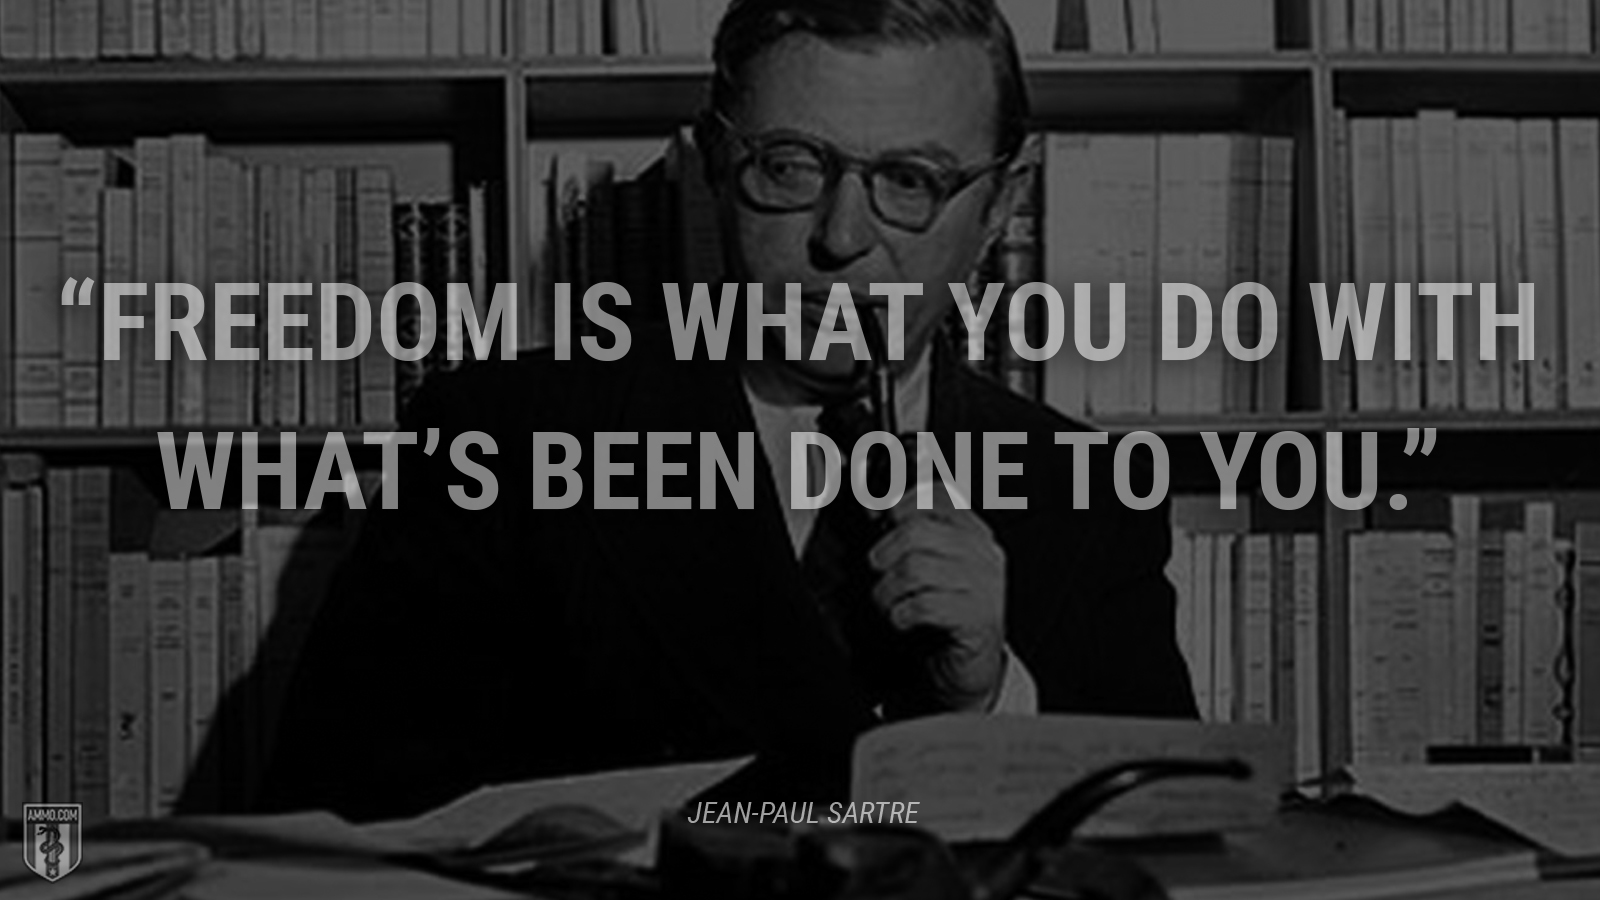 """Freedom is what you do with what's been done to you."" - Jean-Paul Sartre"